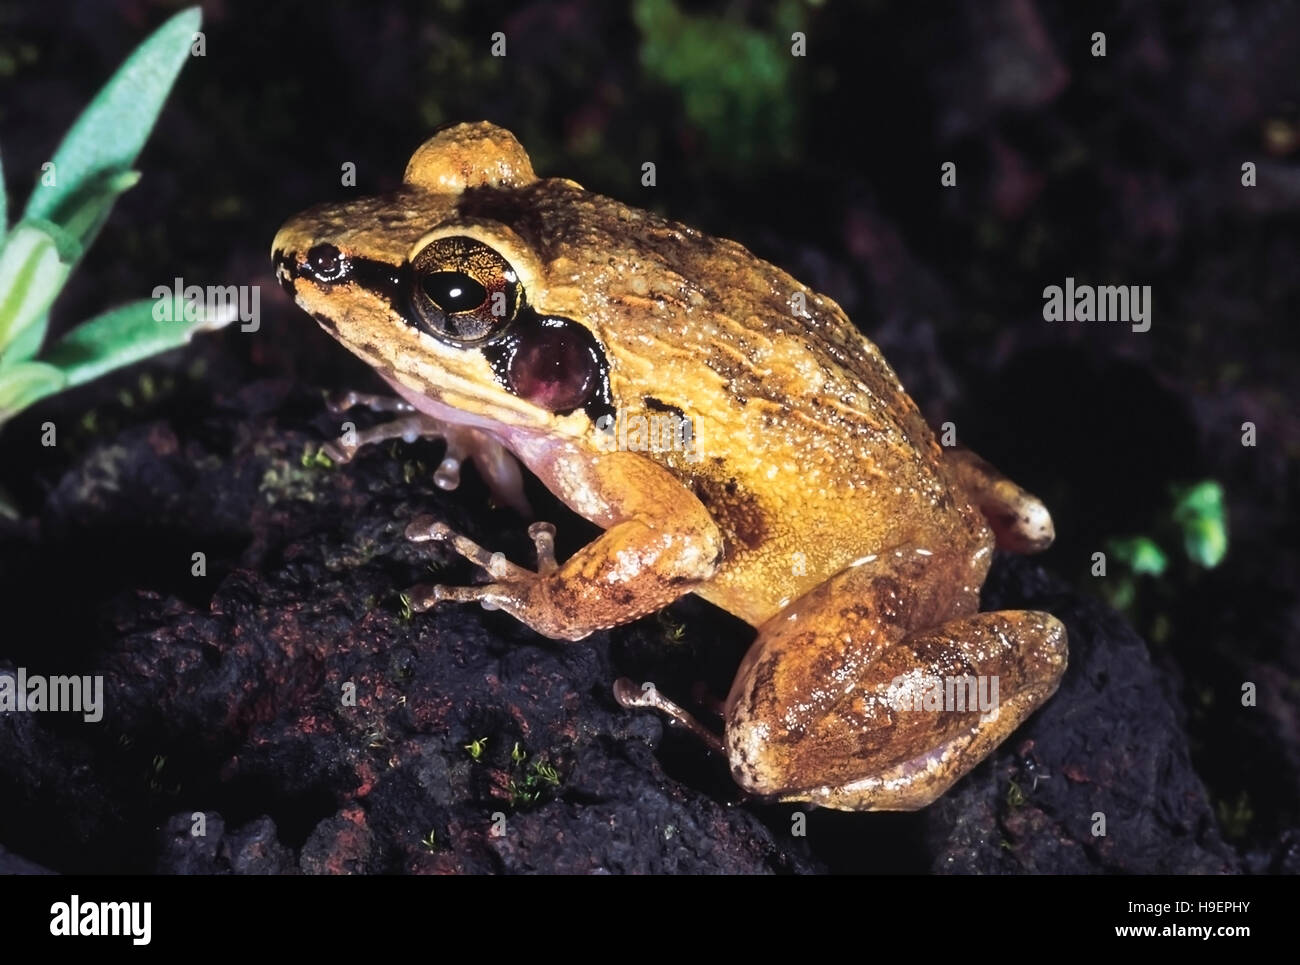 Frog. Phansad Wildlife Sanctuary, Maharashtra, India. - Stock Image